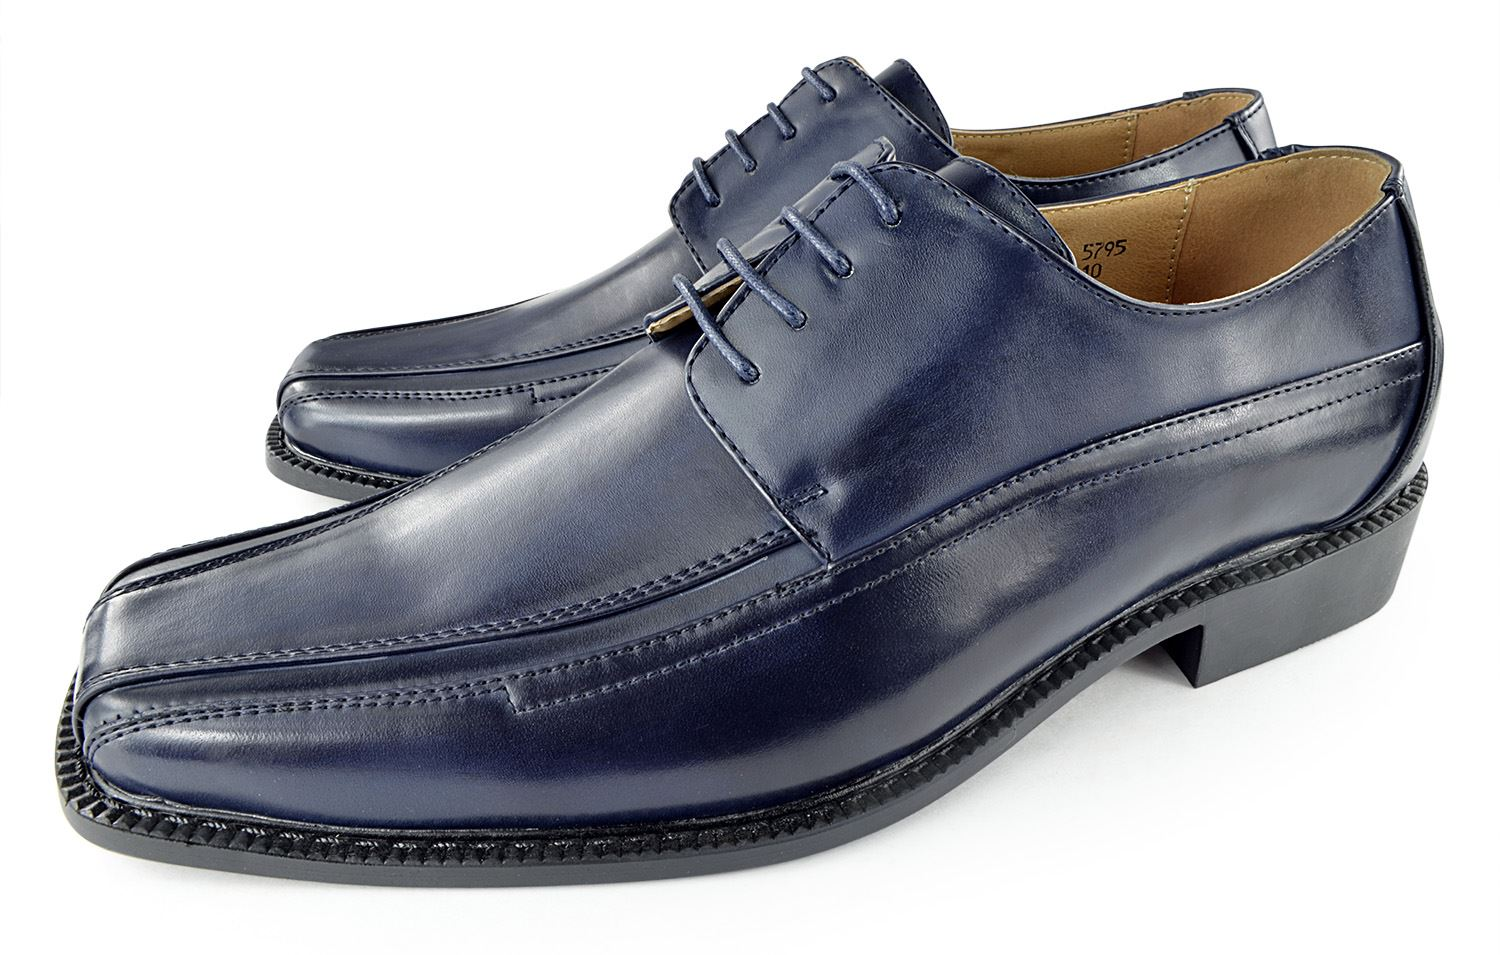 Moda Di Raza- Men's Dress Shoes Leather Shoe Business Formal Casual Parties - Navy